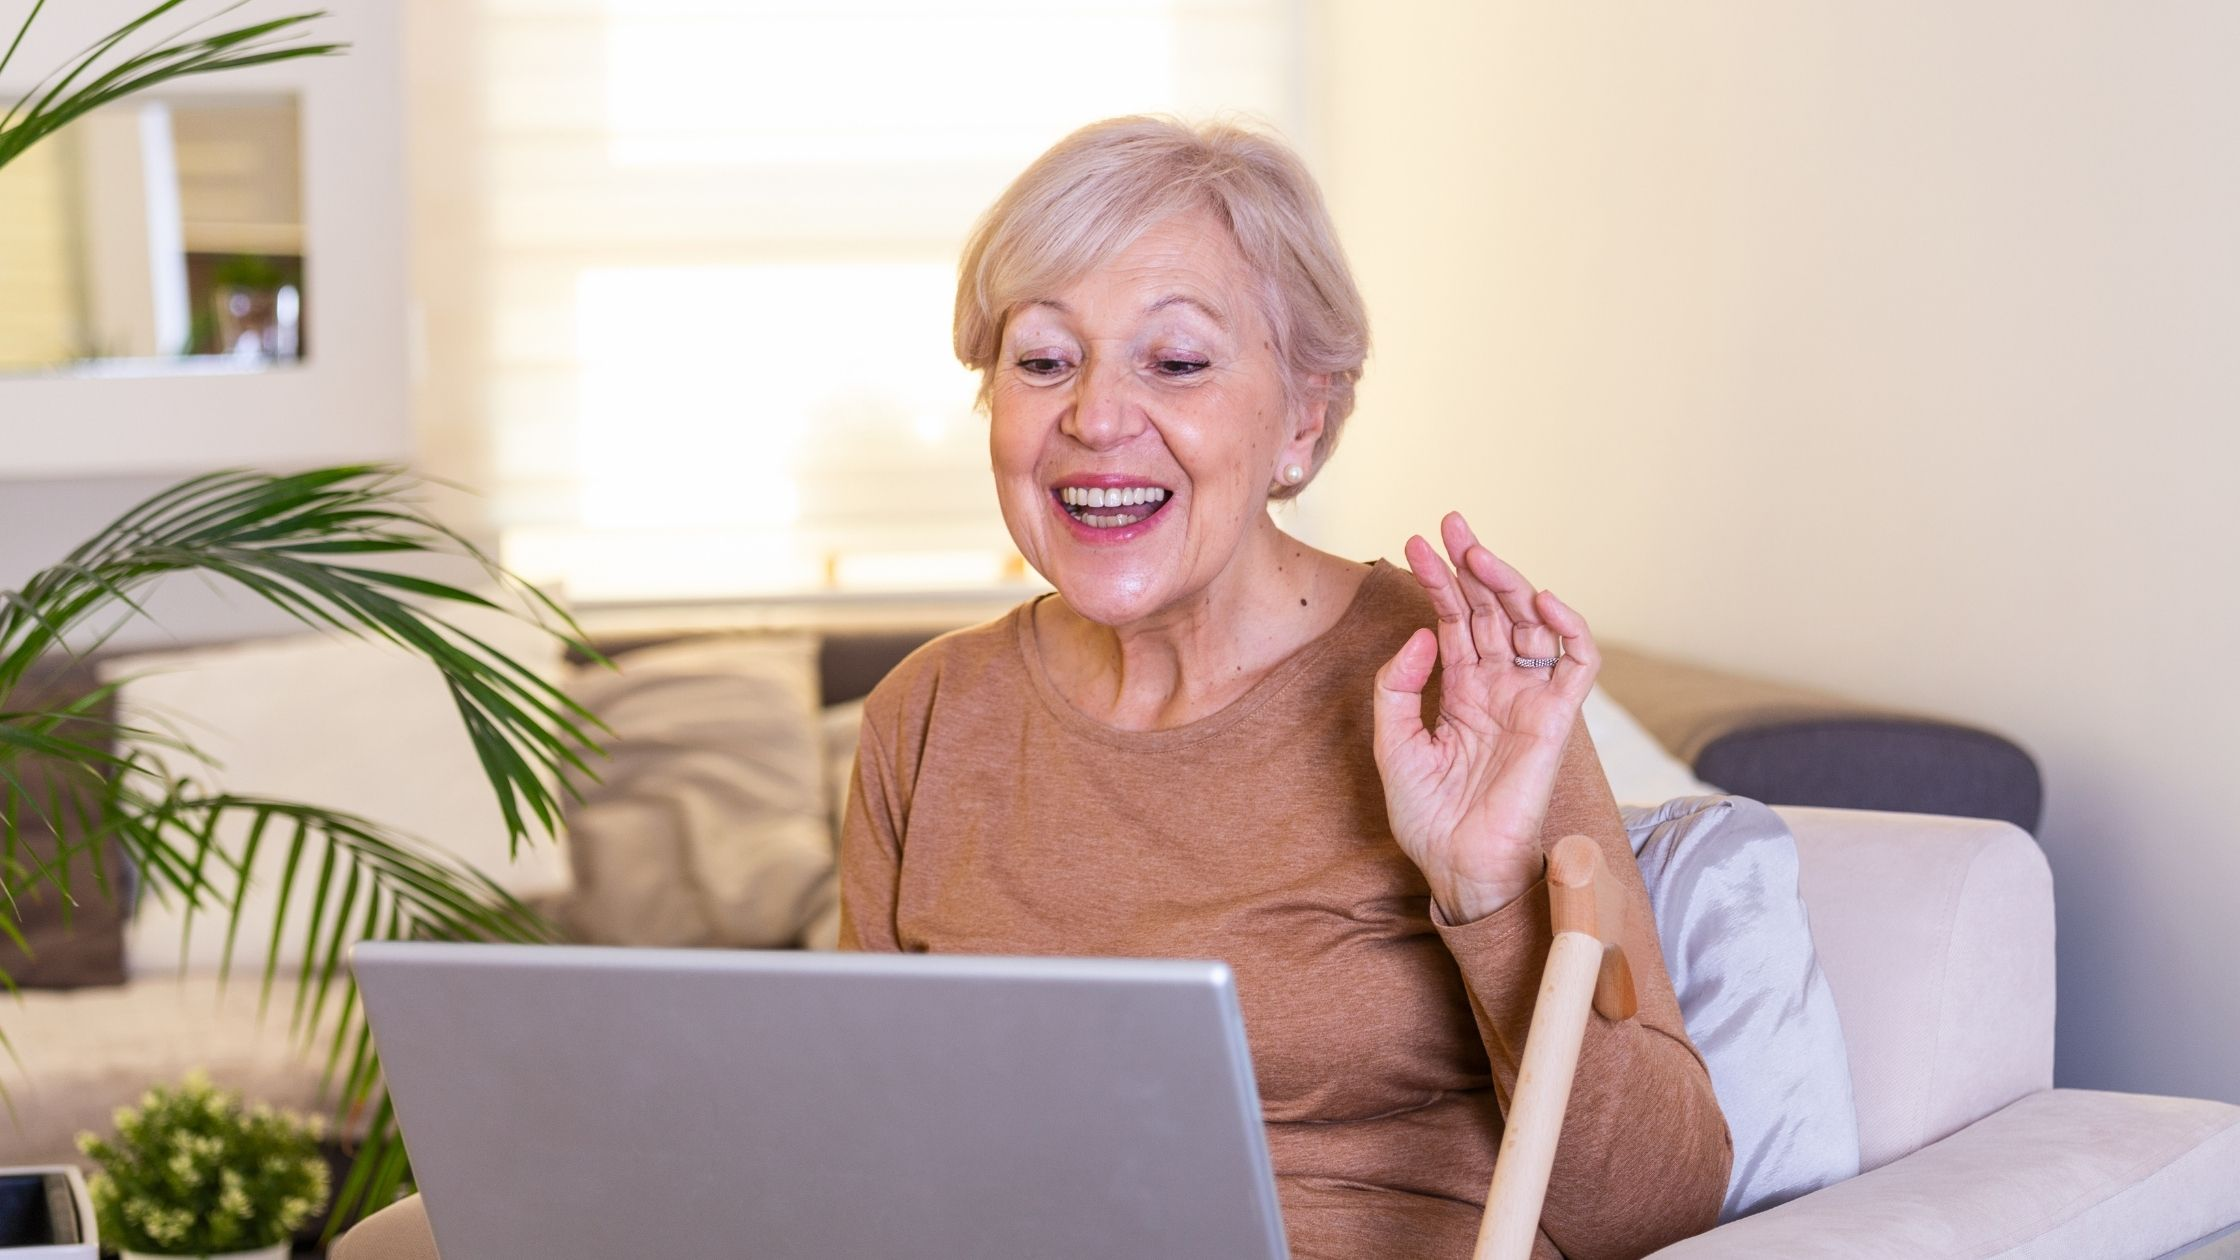 Lady on sofa waves happily towards laptop computer screen